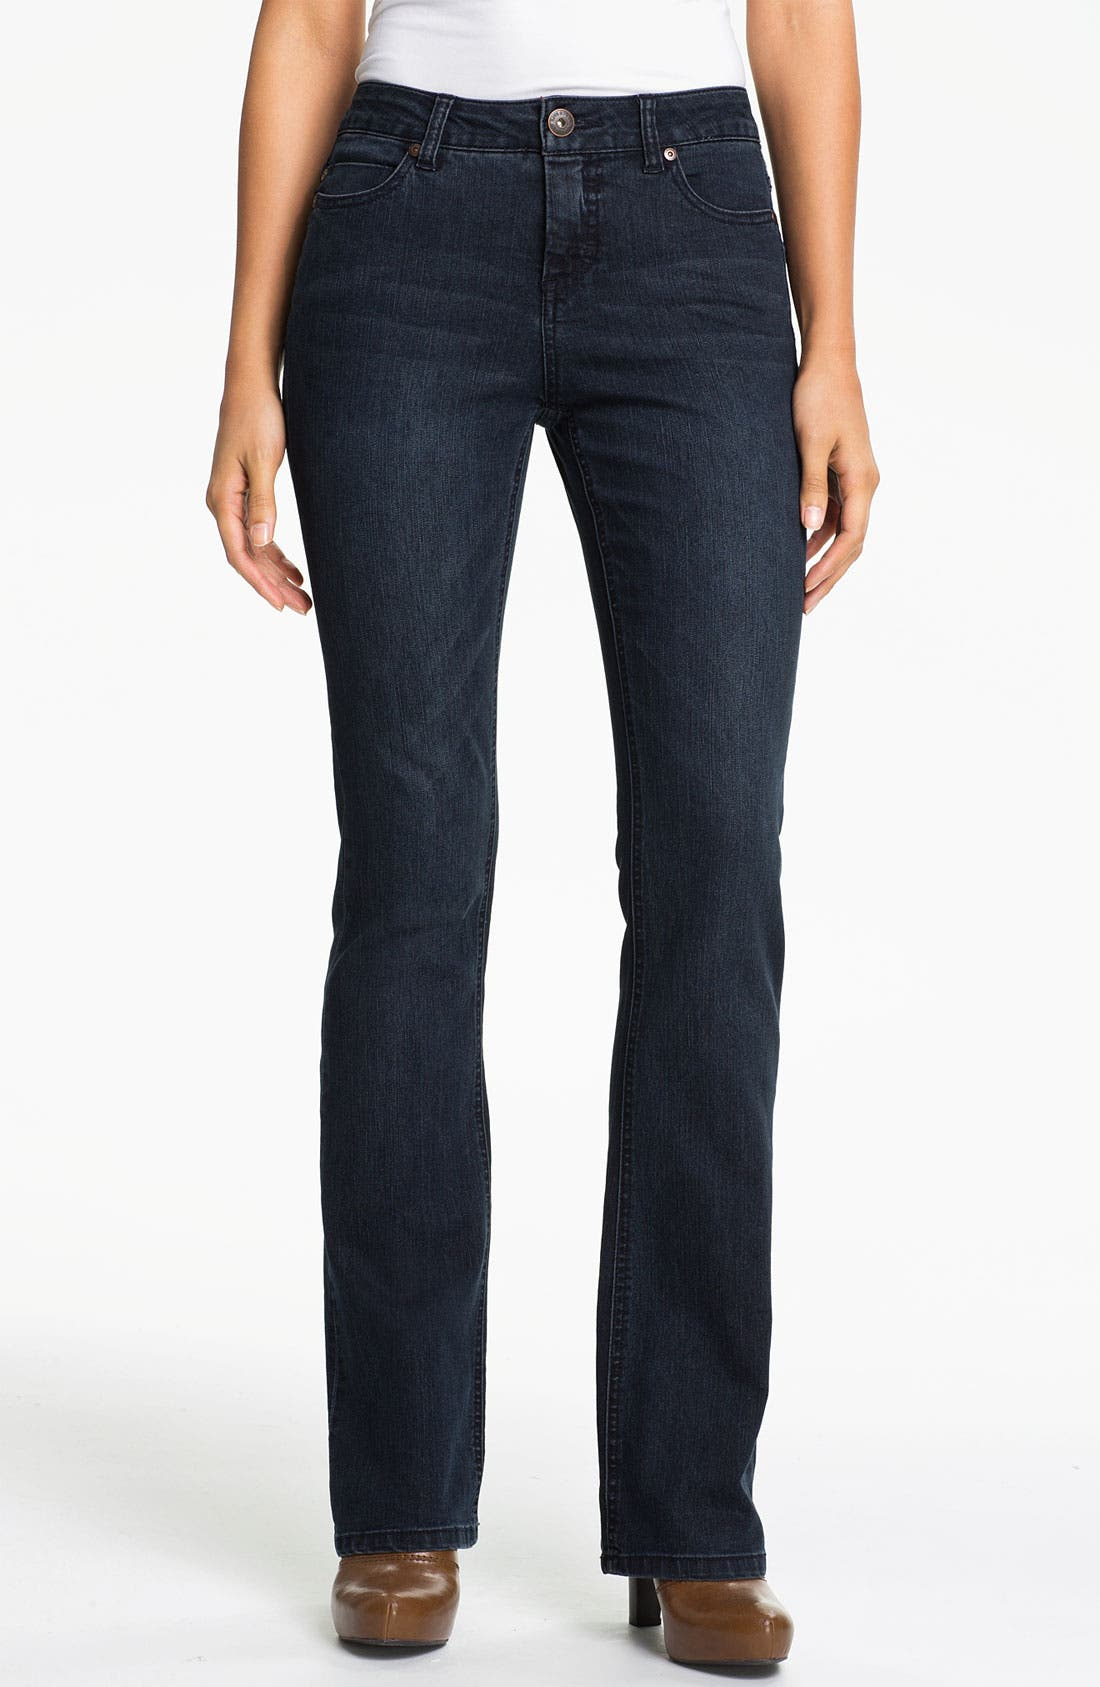 Alternate Image 1 Selected - Liverpool Jeans Company 'Rita' Bootcut Stretch Jeans